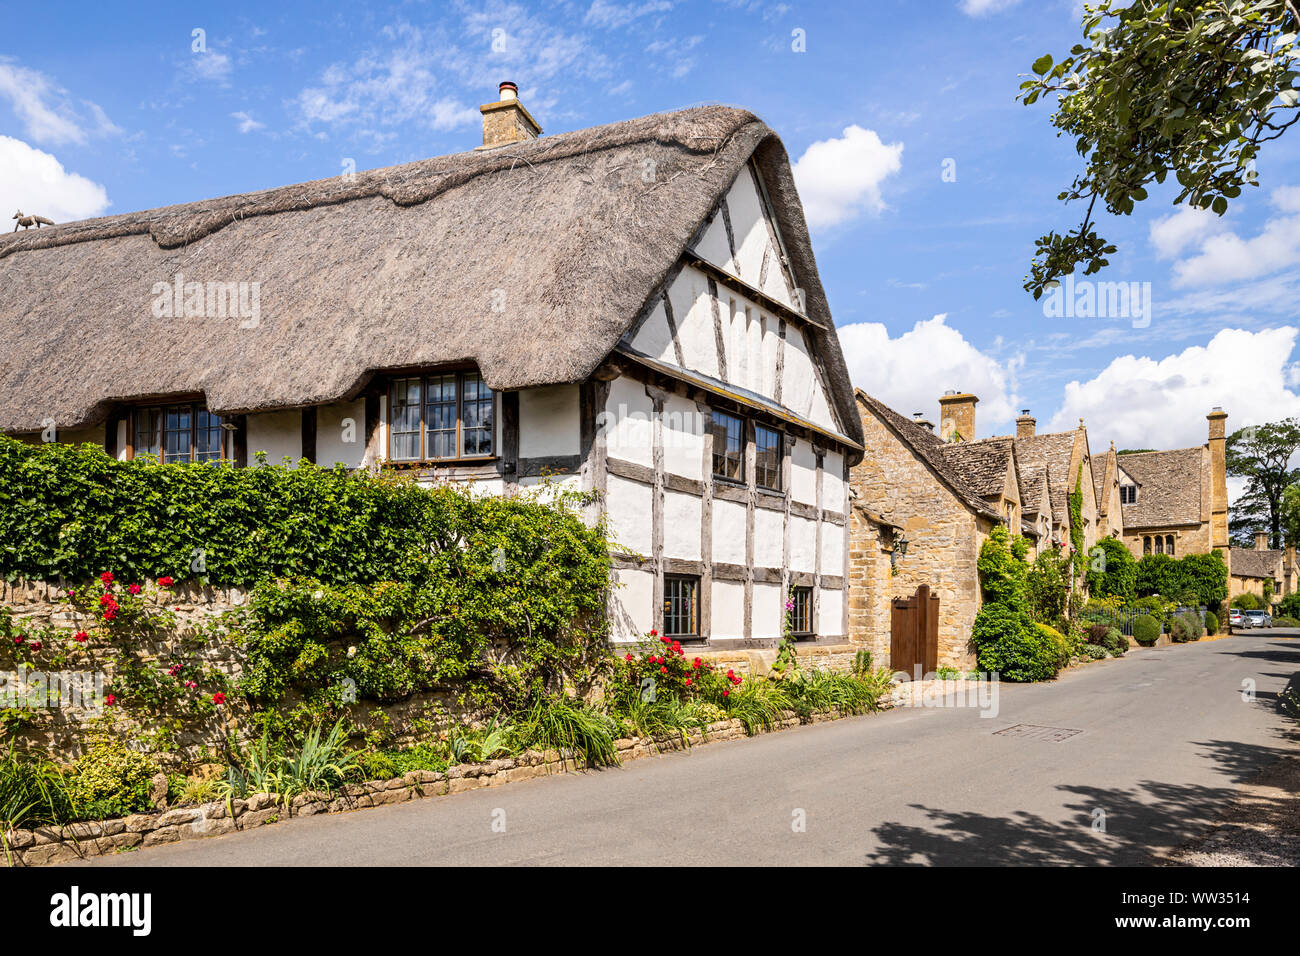 Old half timbered buildings and stone houses beside the lane in the Cotswold village of Stanton, Gloucestershire UK Stock Photo